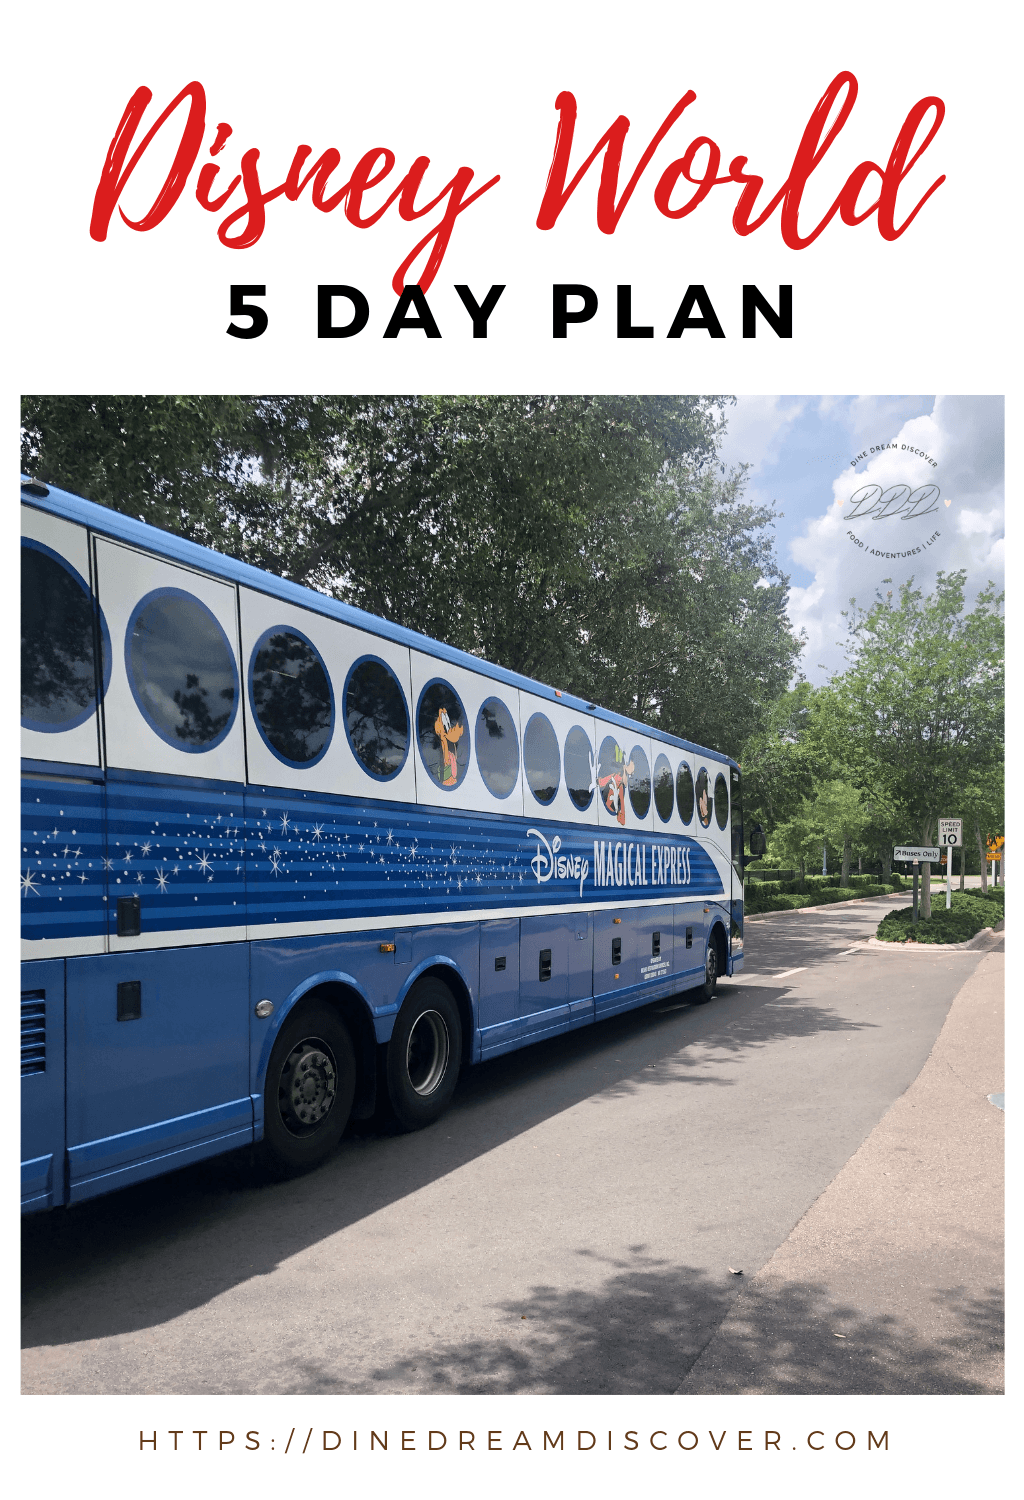 This 5 day Disney World plan is designed to structure the broad strokes of your Walt Disney World schedule so you can fill in the rest.